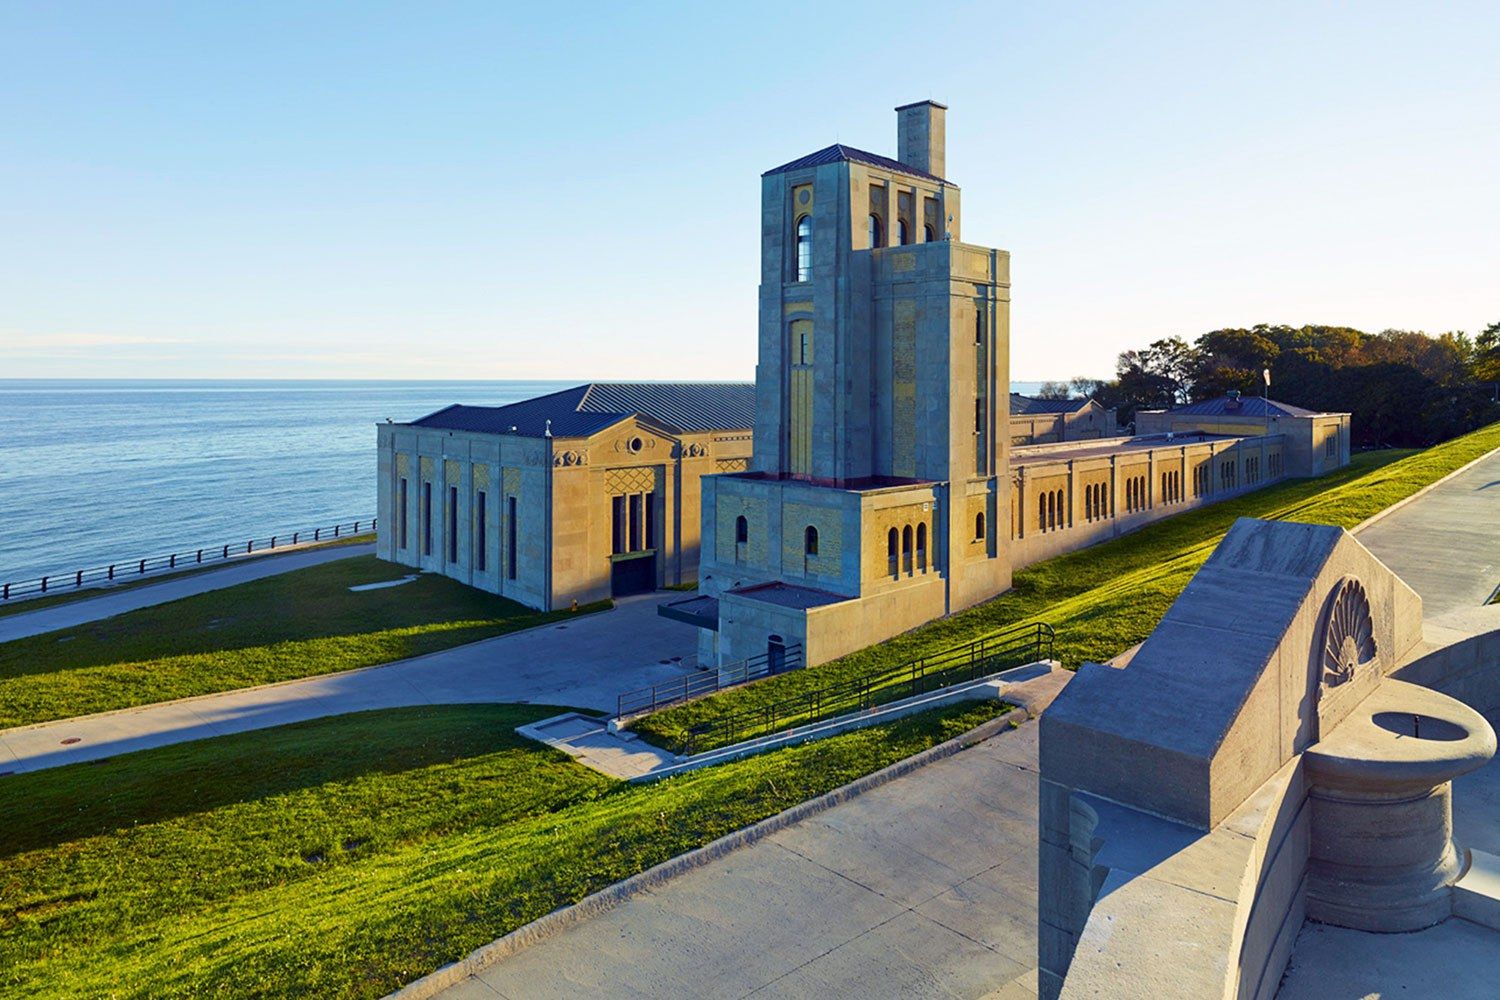 R.C. Harris Water Filtration Plant overlooking Lake Ontario (Photo courtesy of Taylor Hazell Architects)